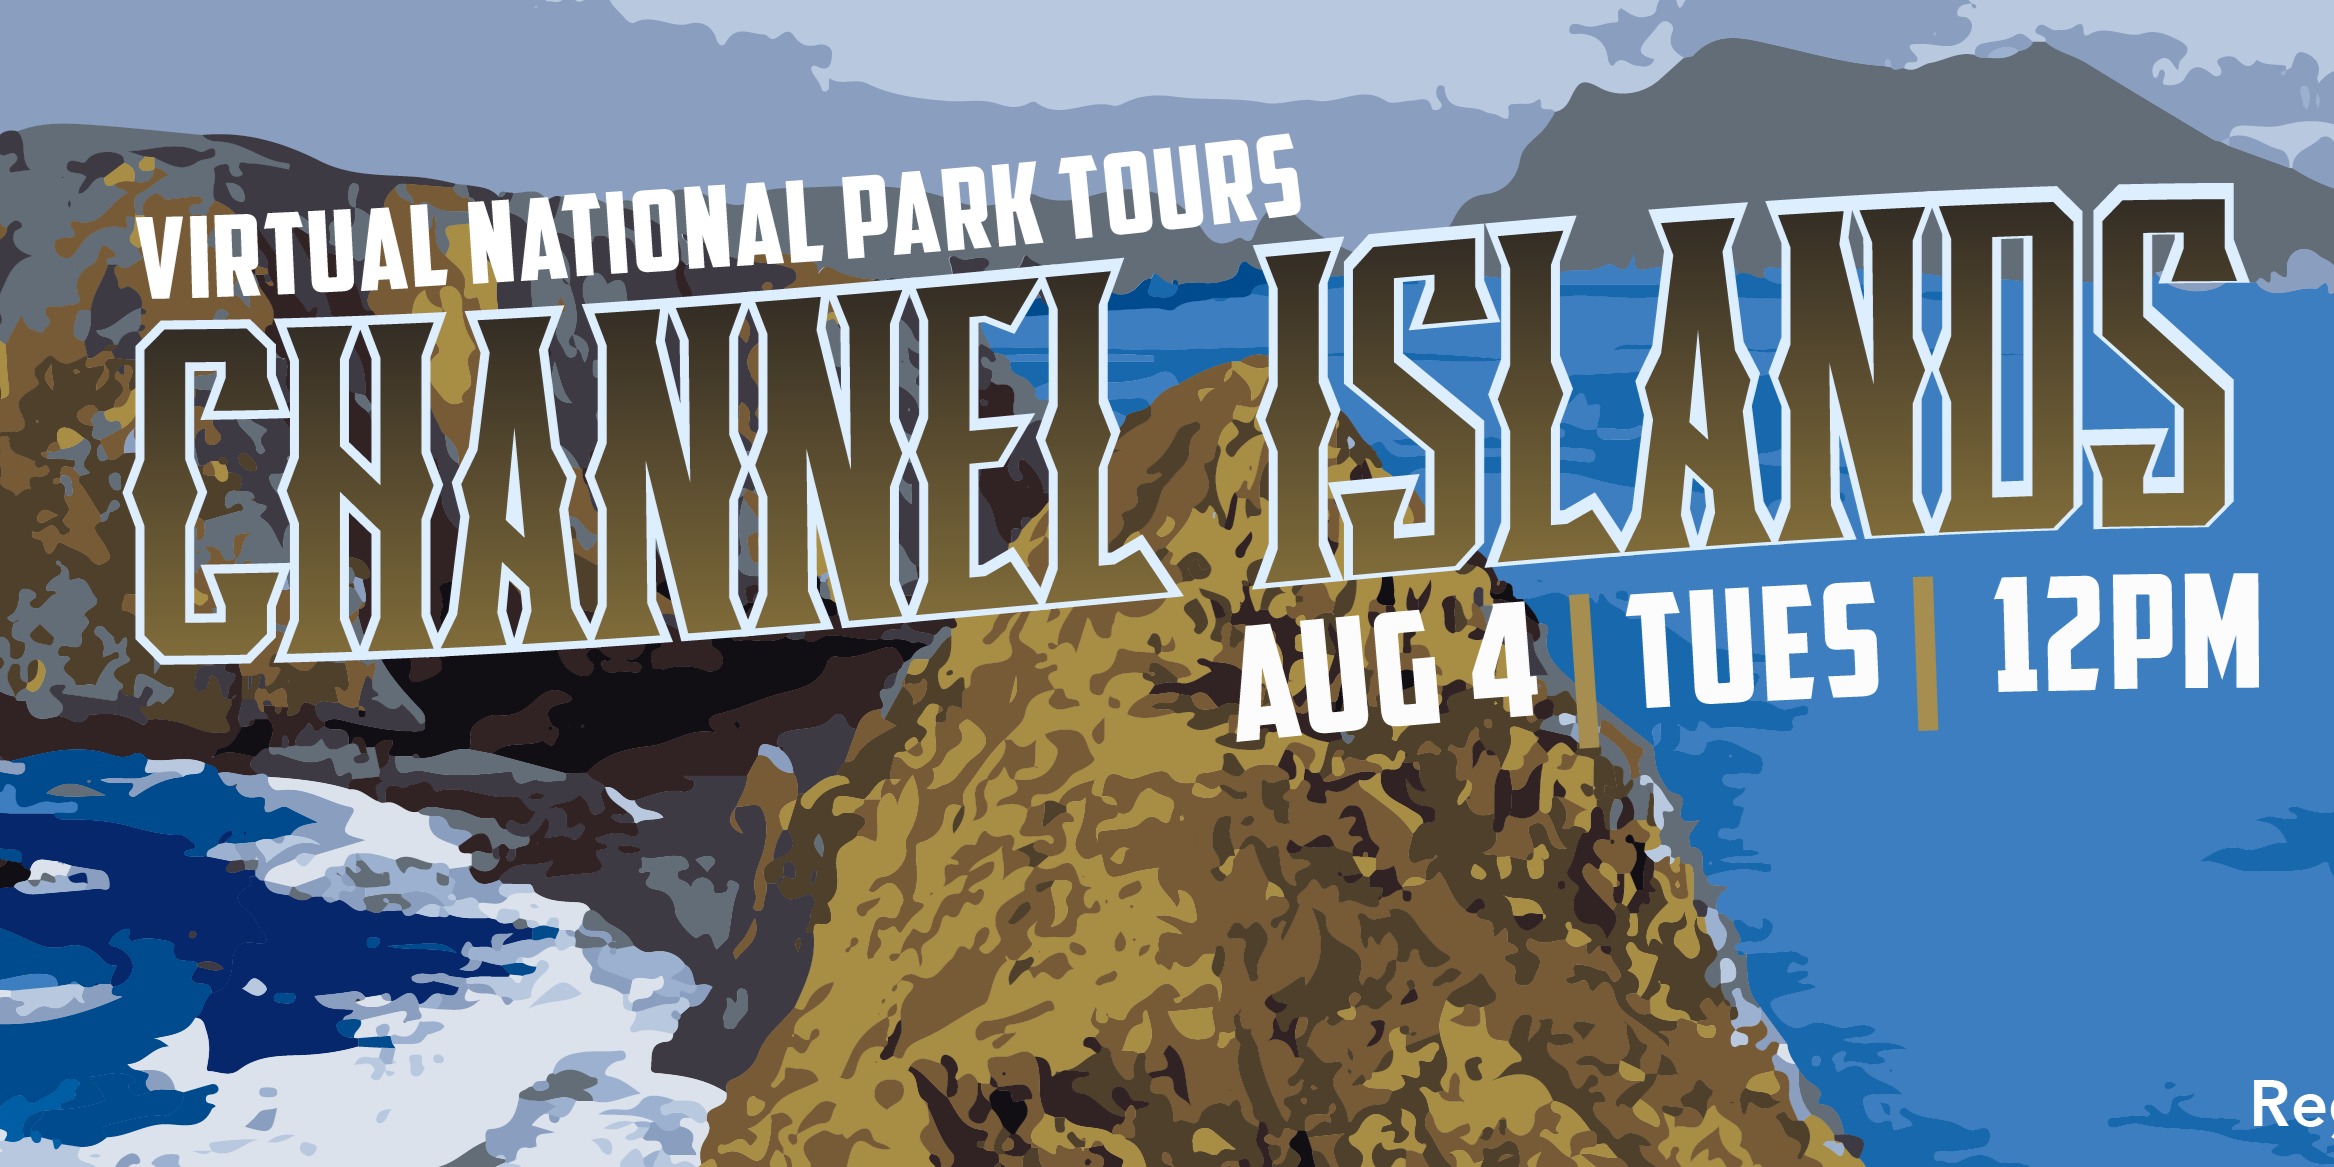 Virtual National Park Tours - Channel Islands National Park - The Pygmy Mammoth!